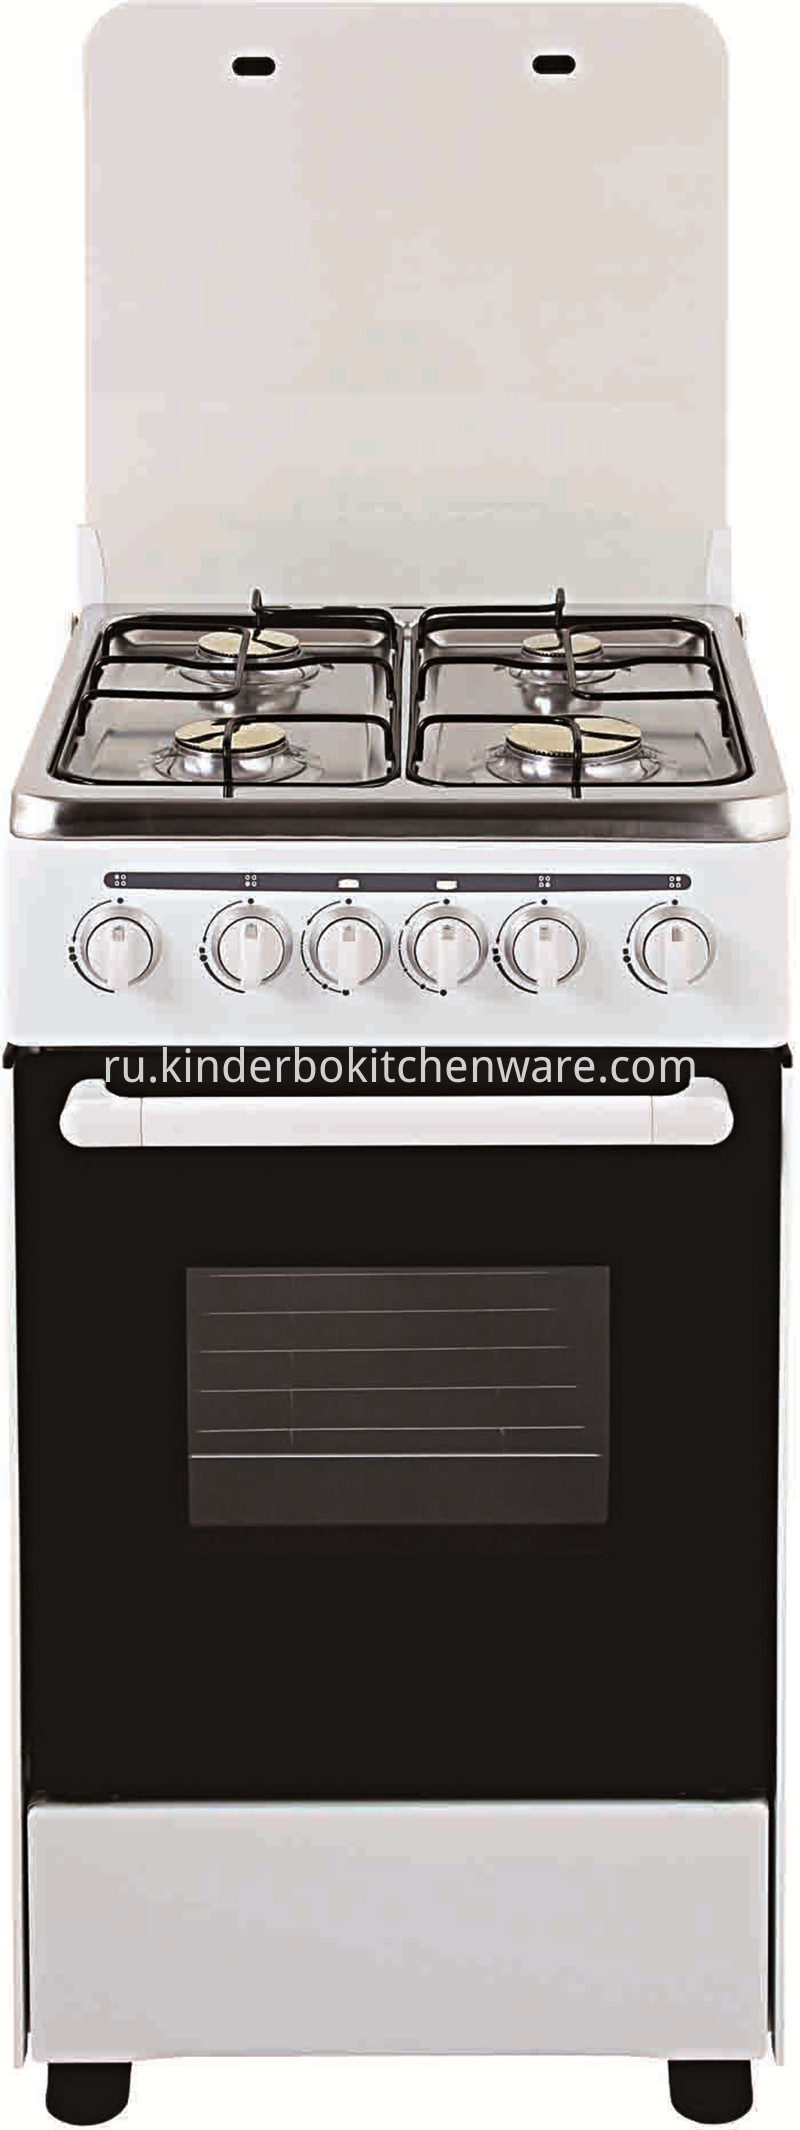 4 Burner Gas Range with Electric Oven Pizza Oven